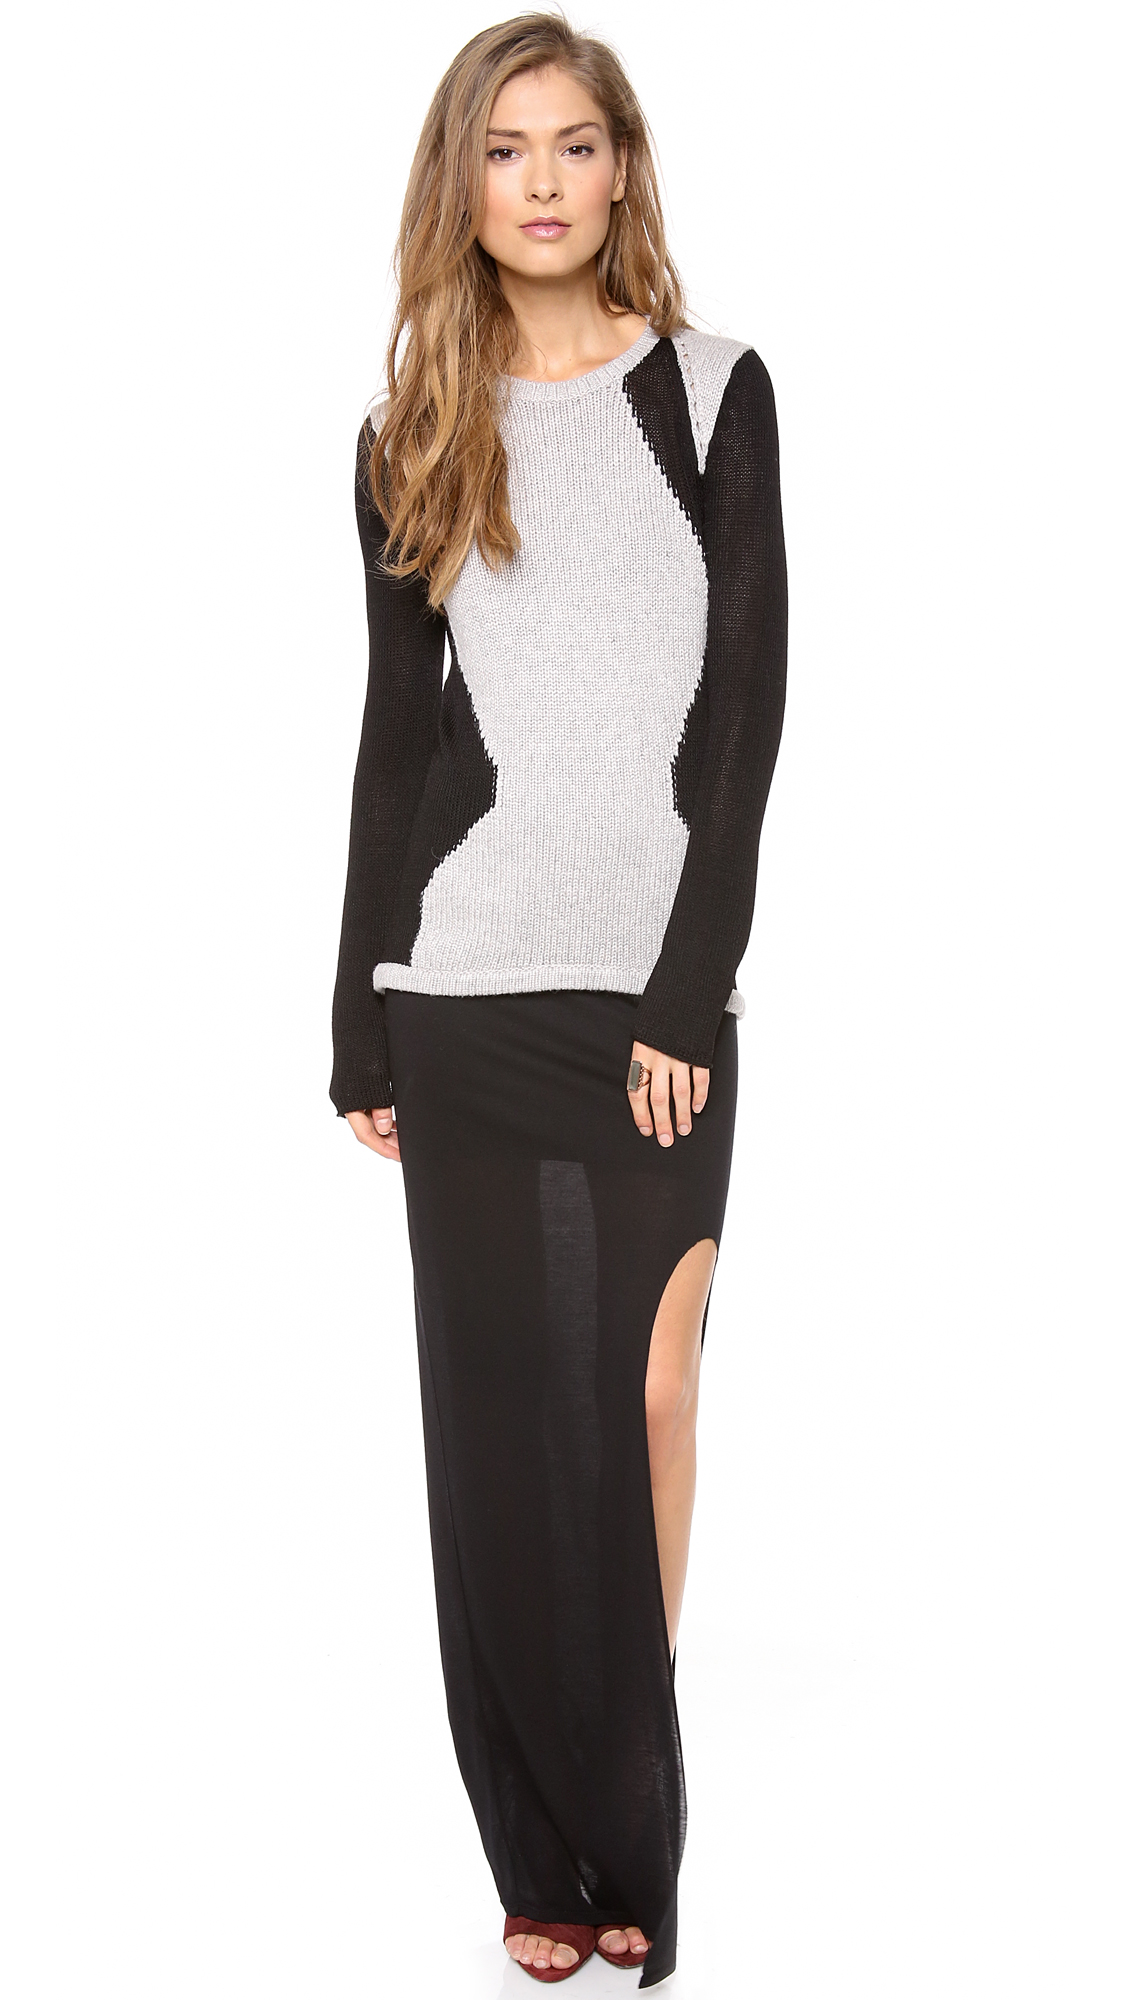 HELMUT Helmut Lang Kinetic Side Slit Maxi Skirt | 15% off first ...